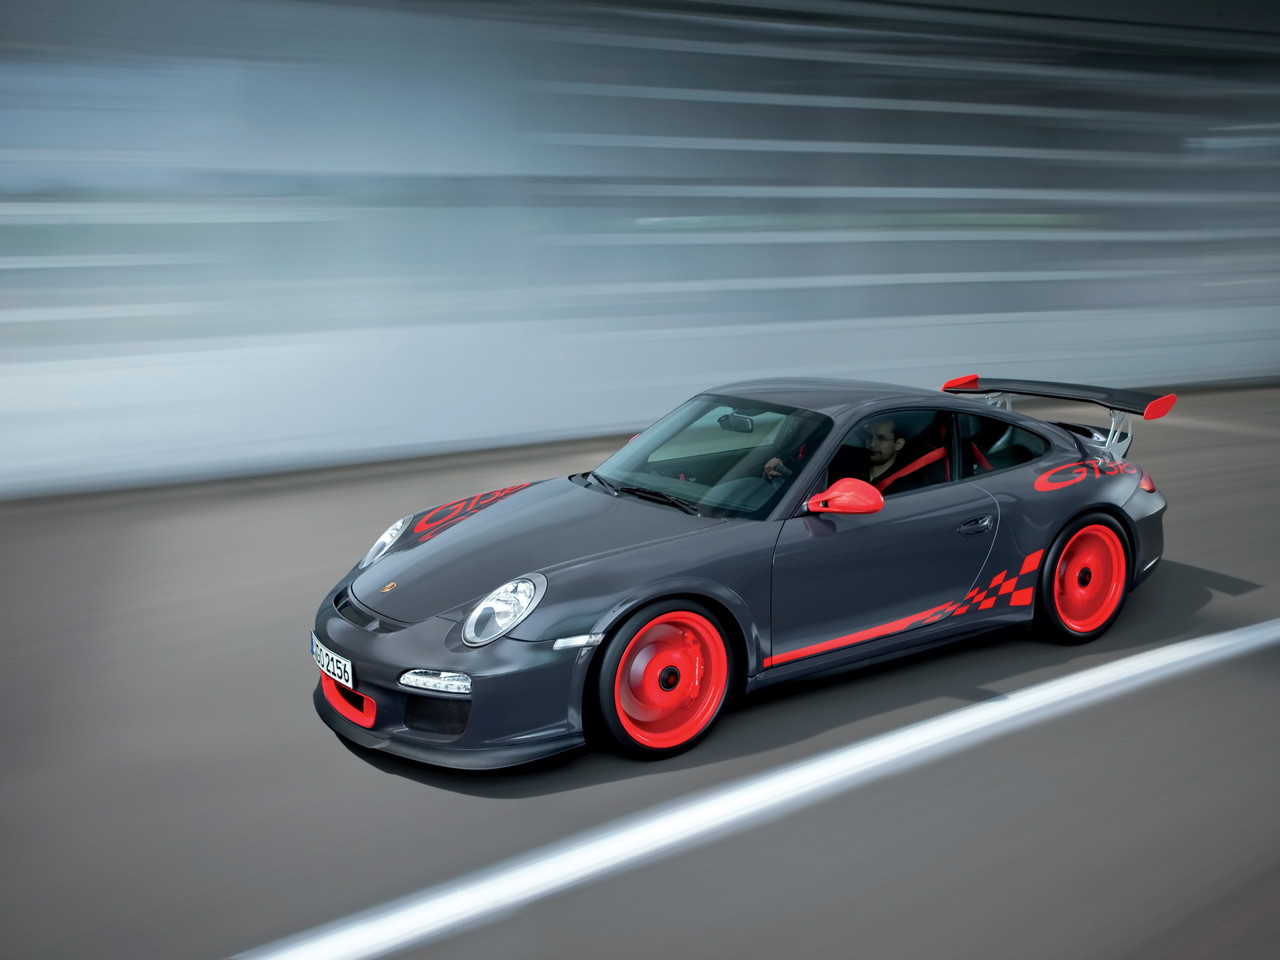 2010 porsche 911 gt3 rs specs price pictures engine review. Black Bedroom Furniture Sets. Home Design Ideas